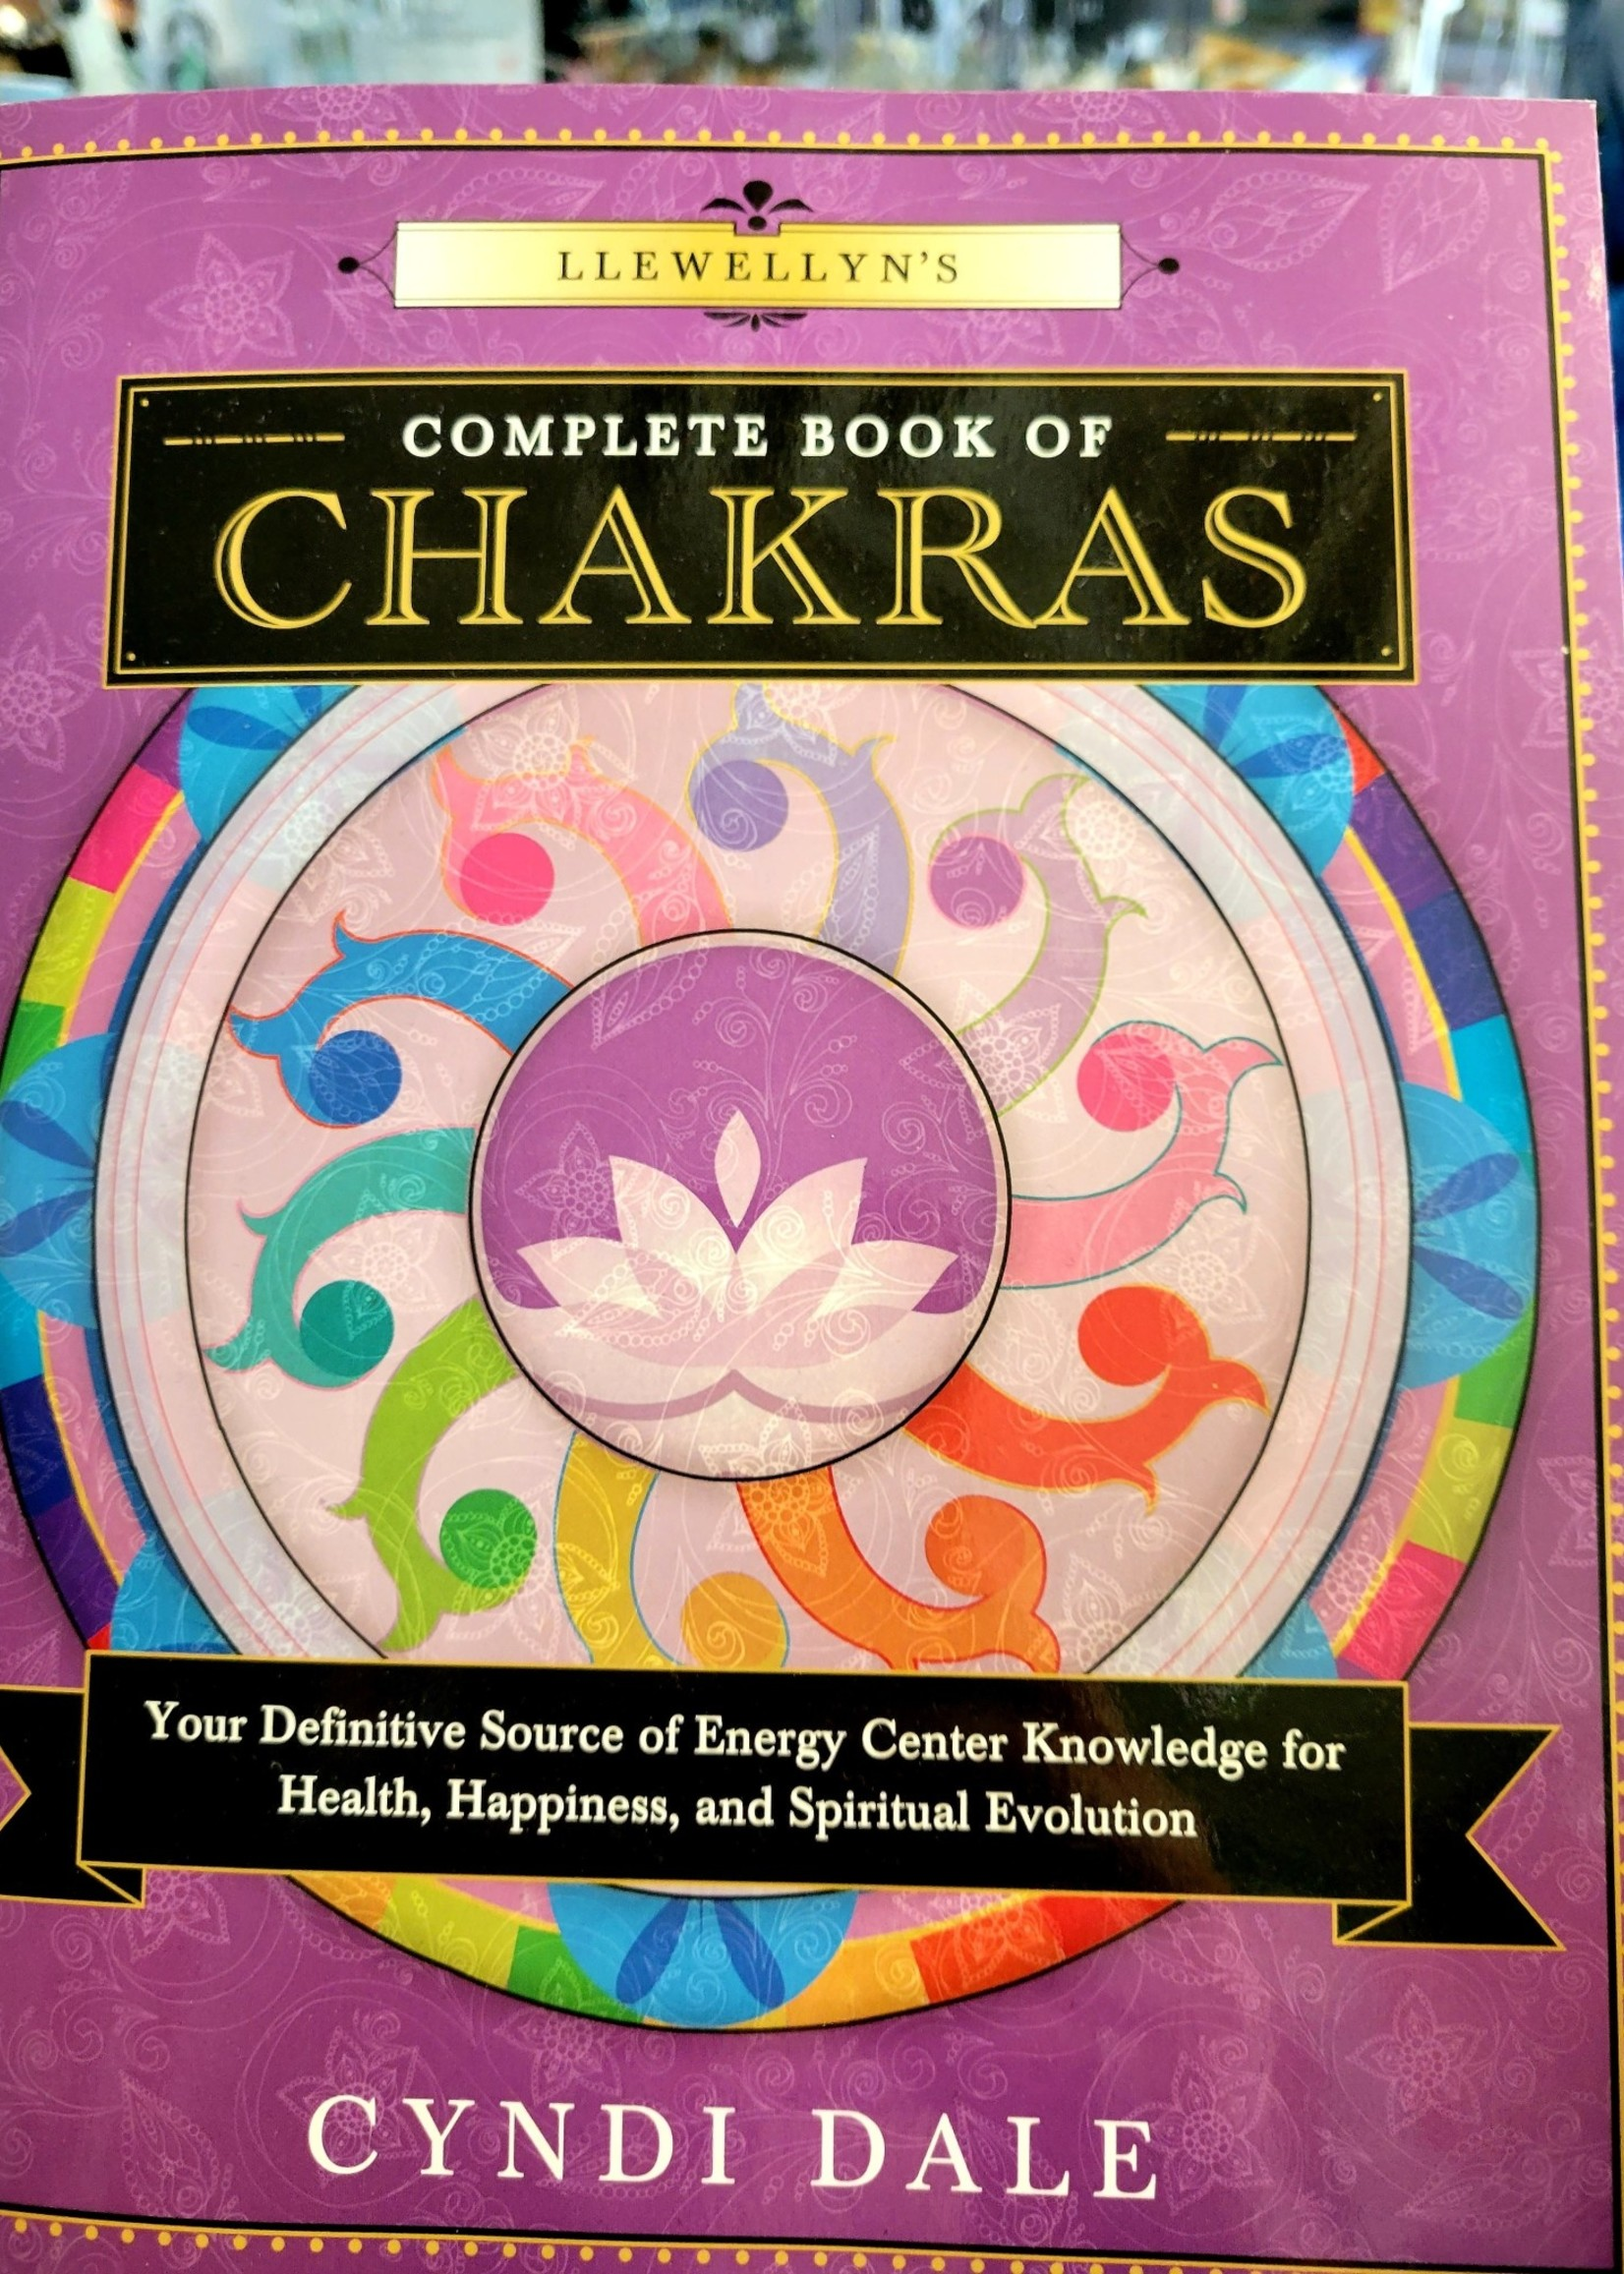 Llewellyn's Complete Book of Chakras-BY CYNDI DALE